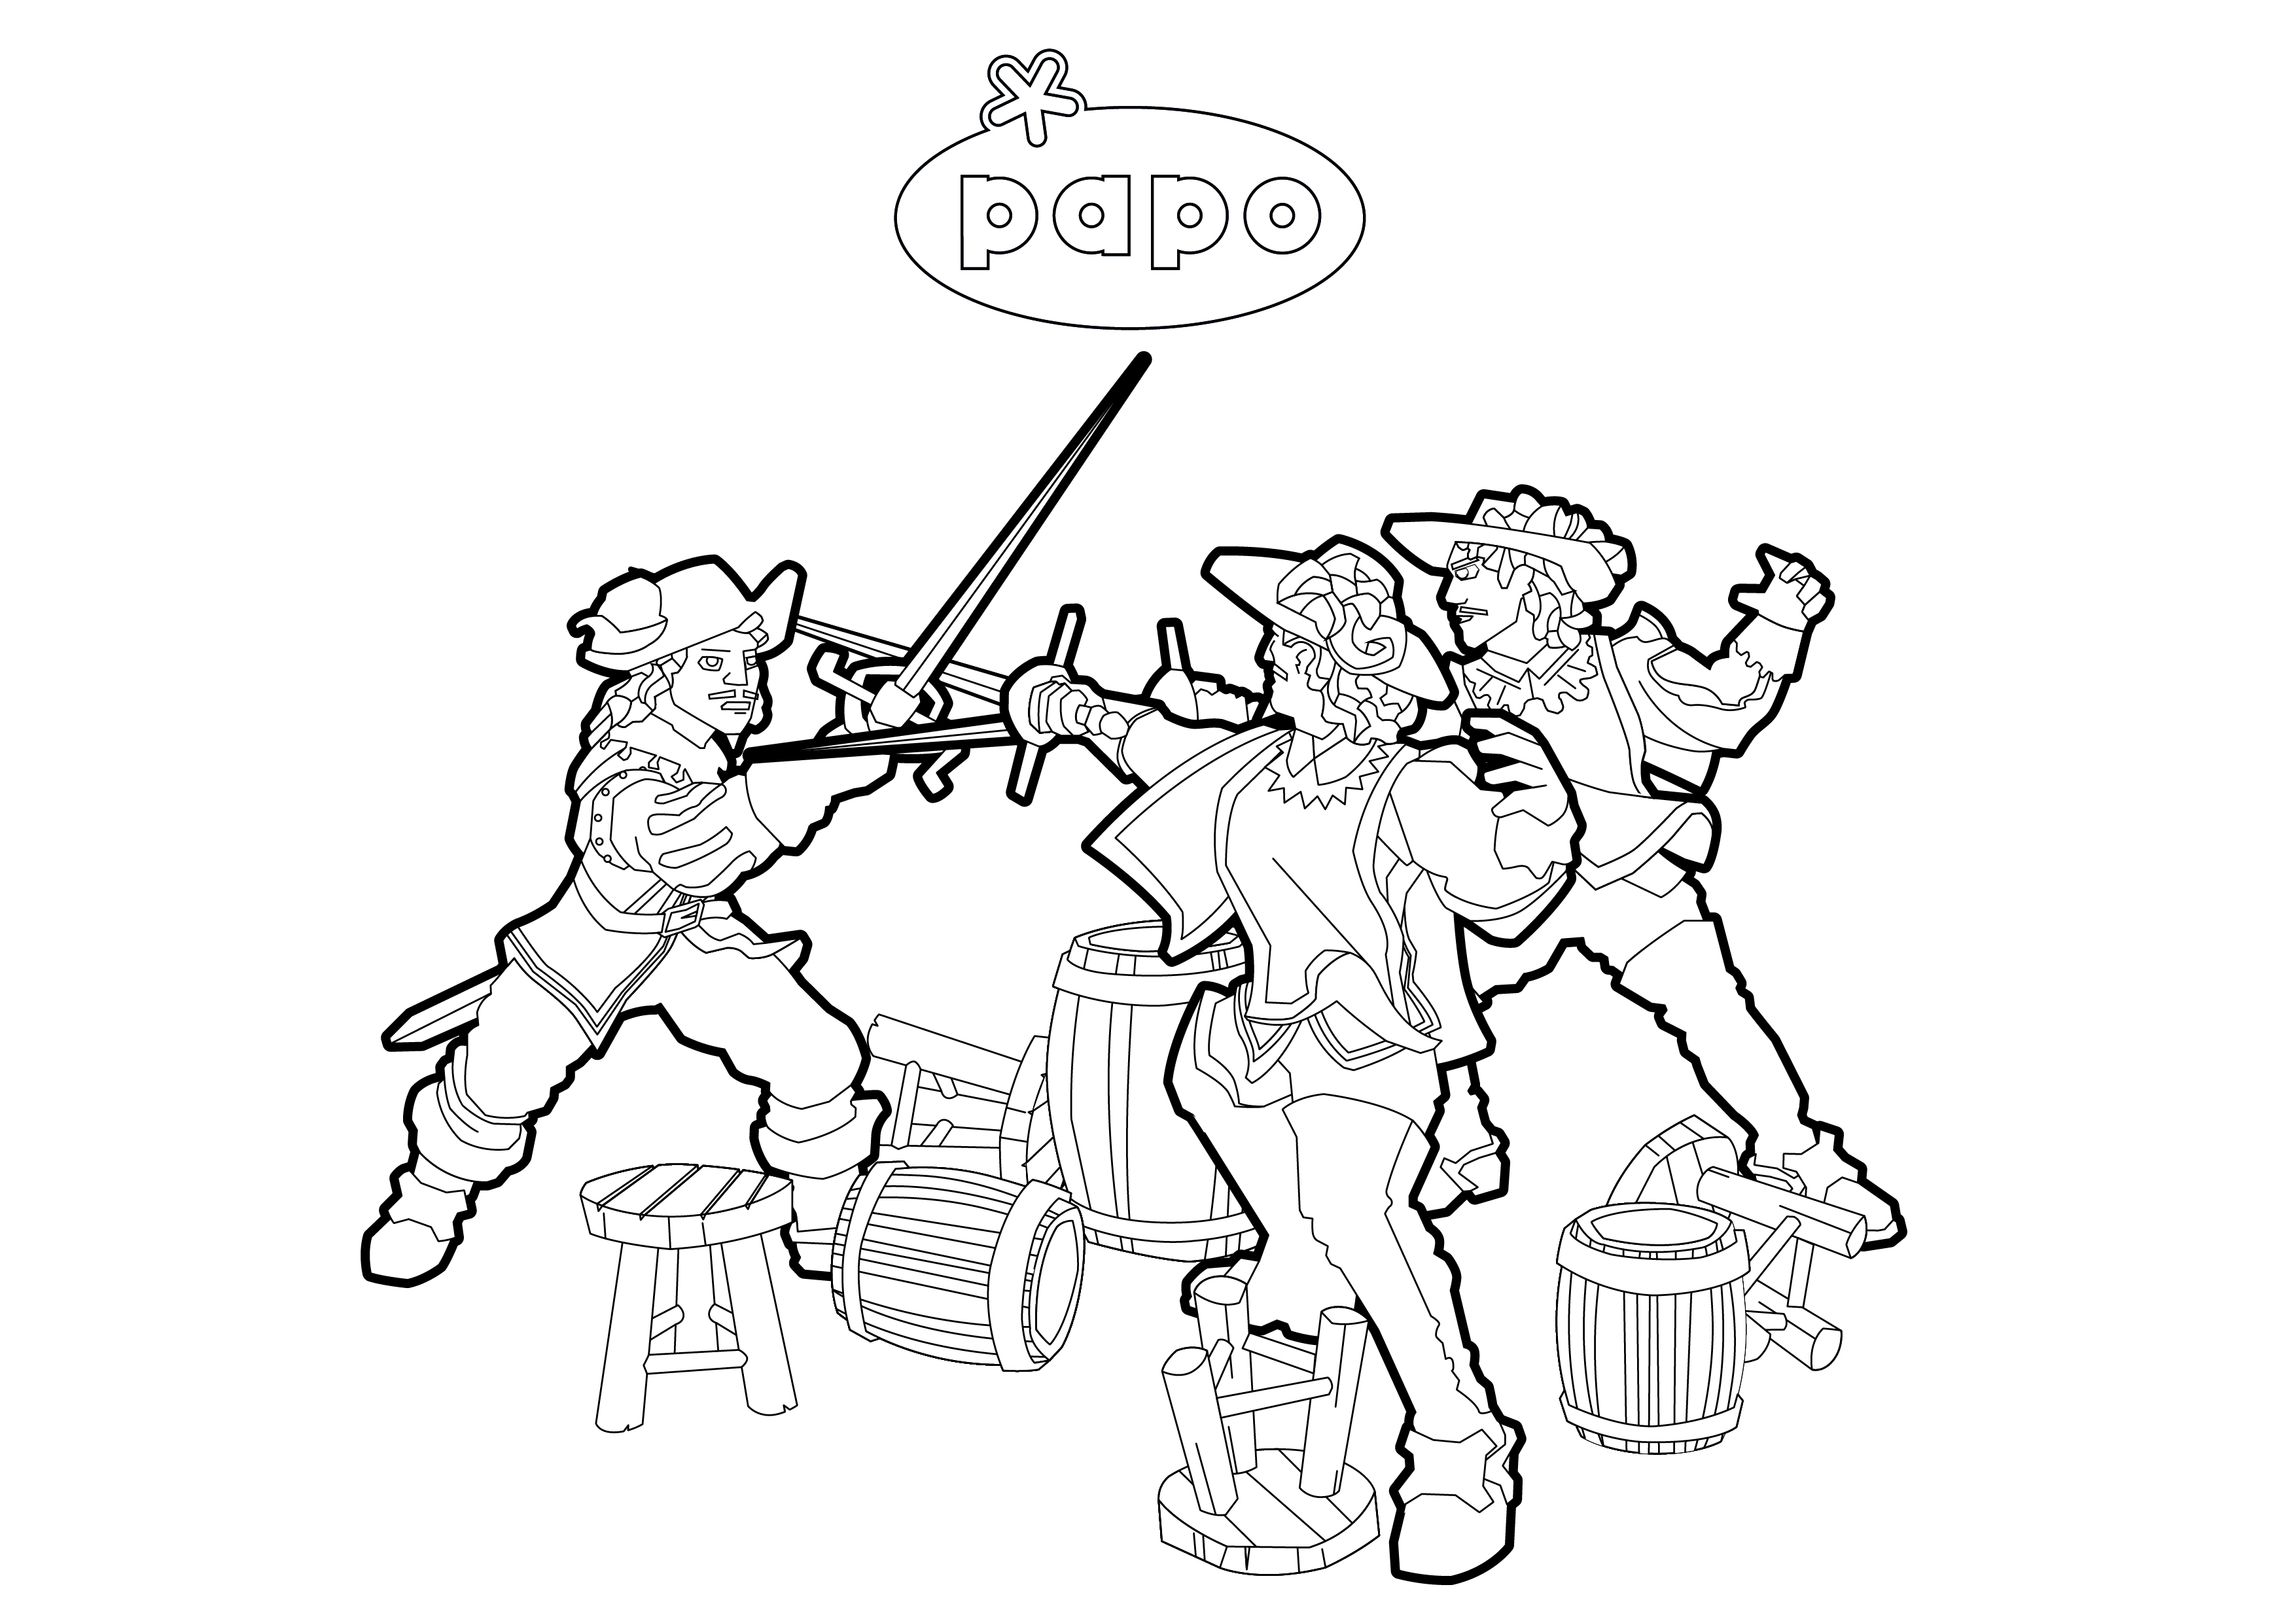 PAPO_2019-Historicals-coloriage-01.jpg